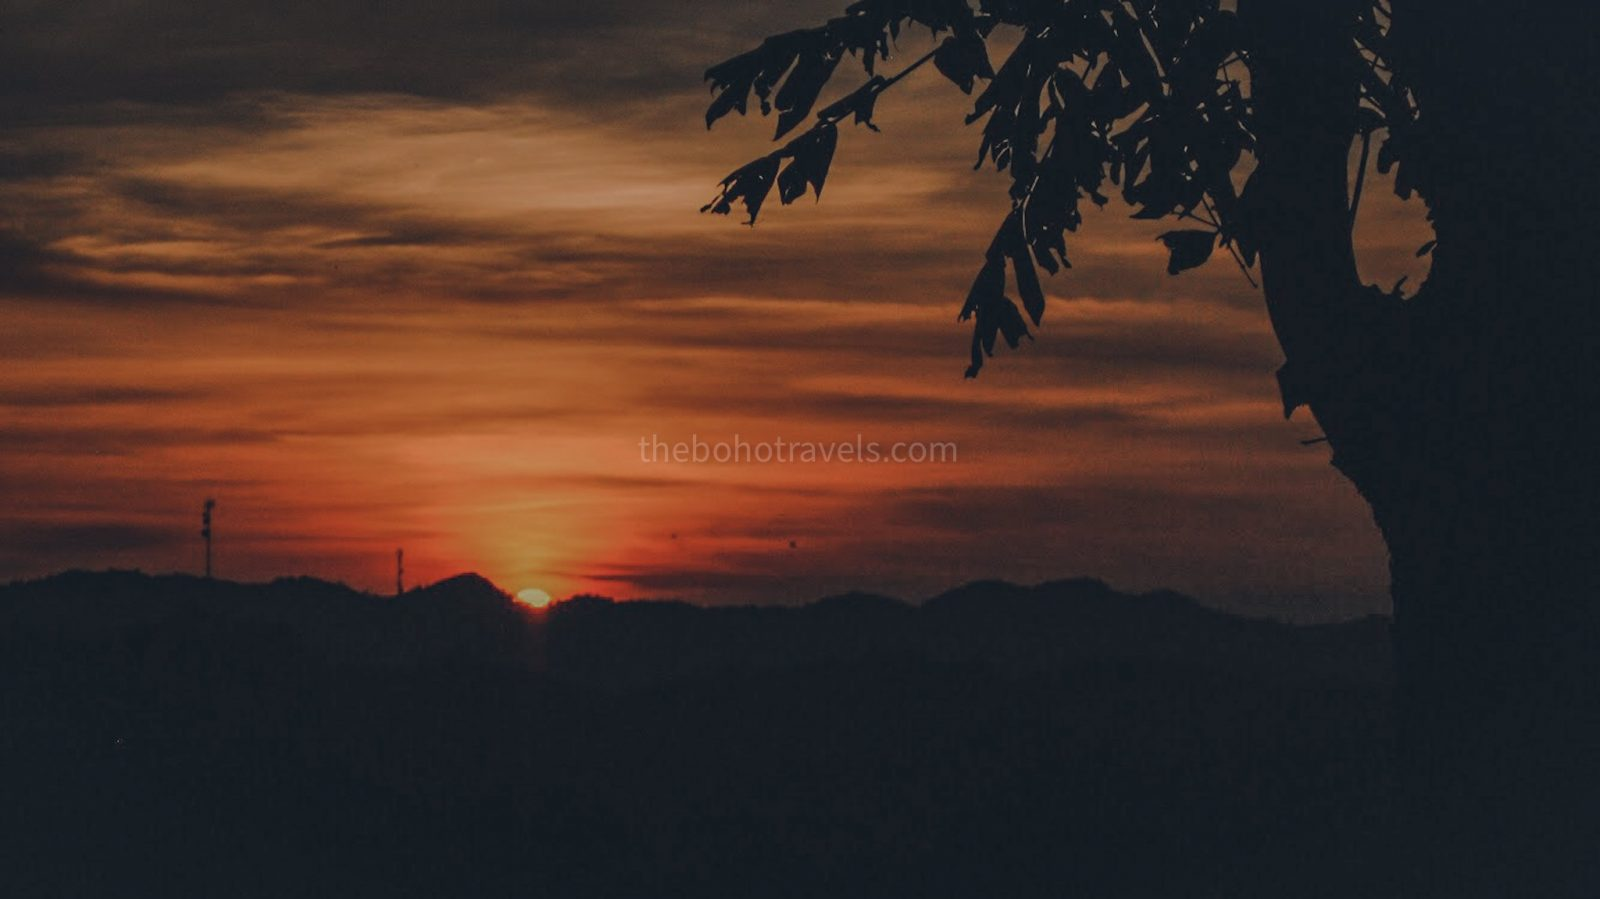 Bohol, Philippines: Sunset at Chocolate Hills